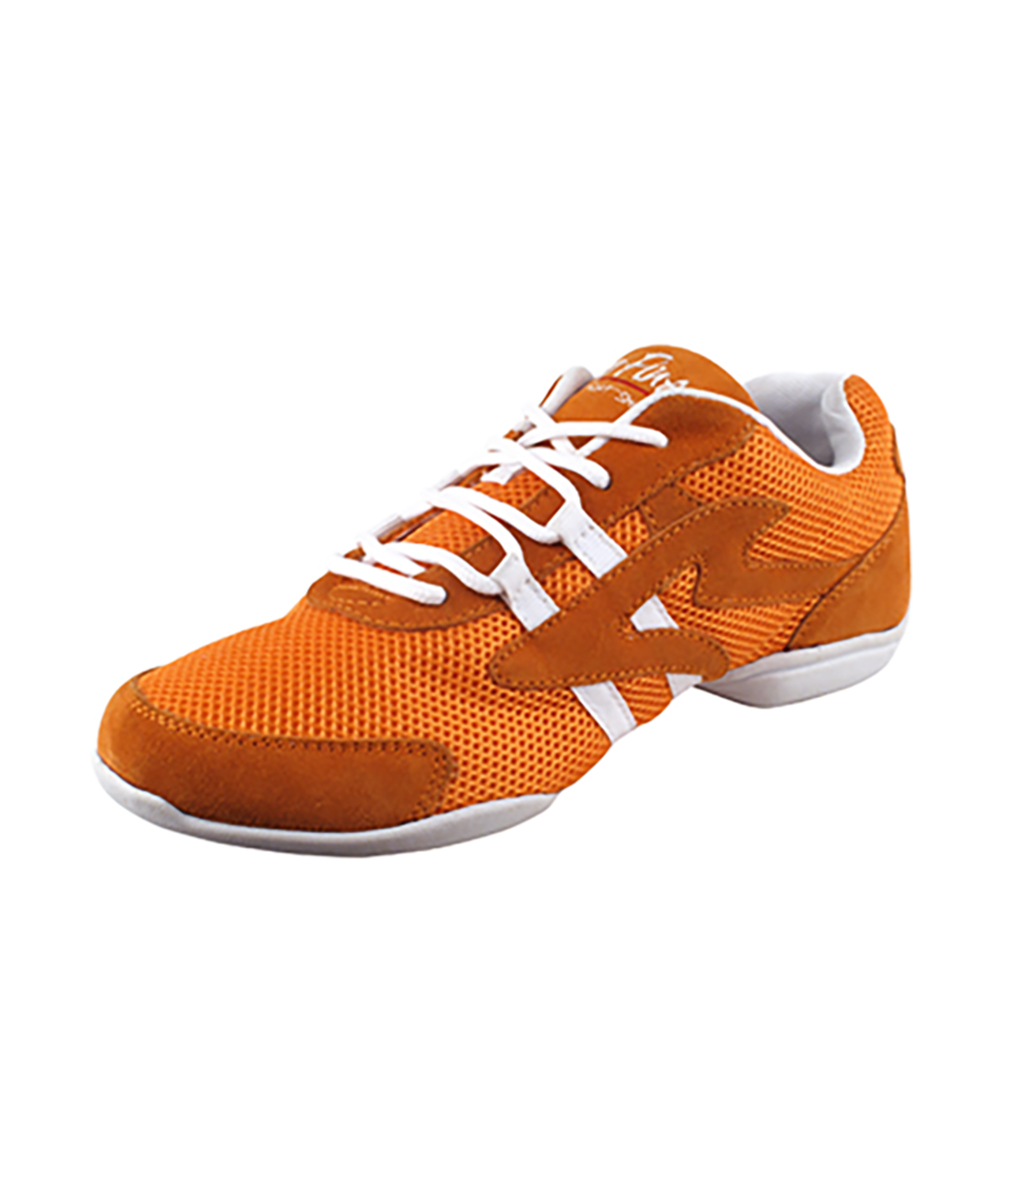 Very Fine Dance Sneakers - VFSN012 - Orange size 10 B(M) US Women / 8.5 D(M) US Men